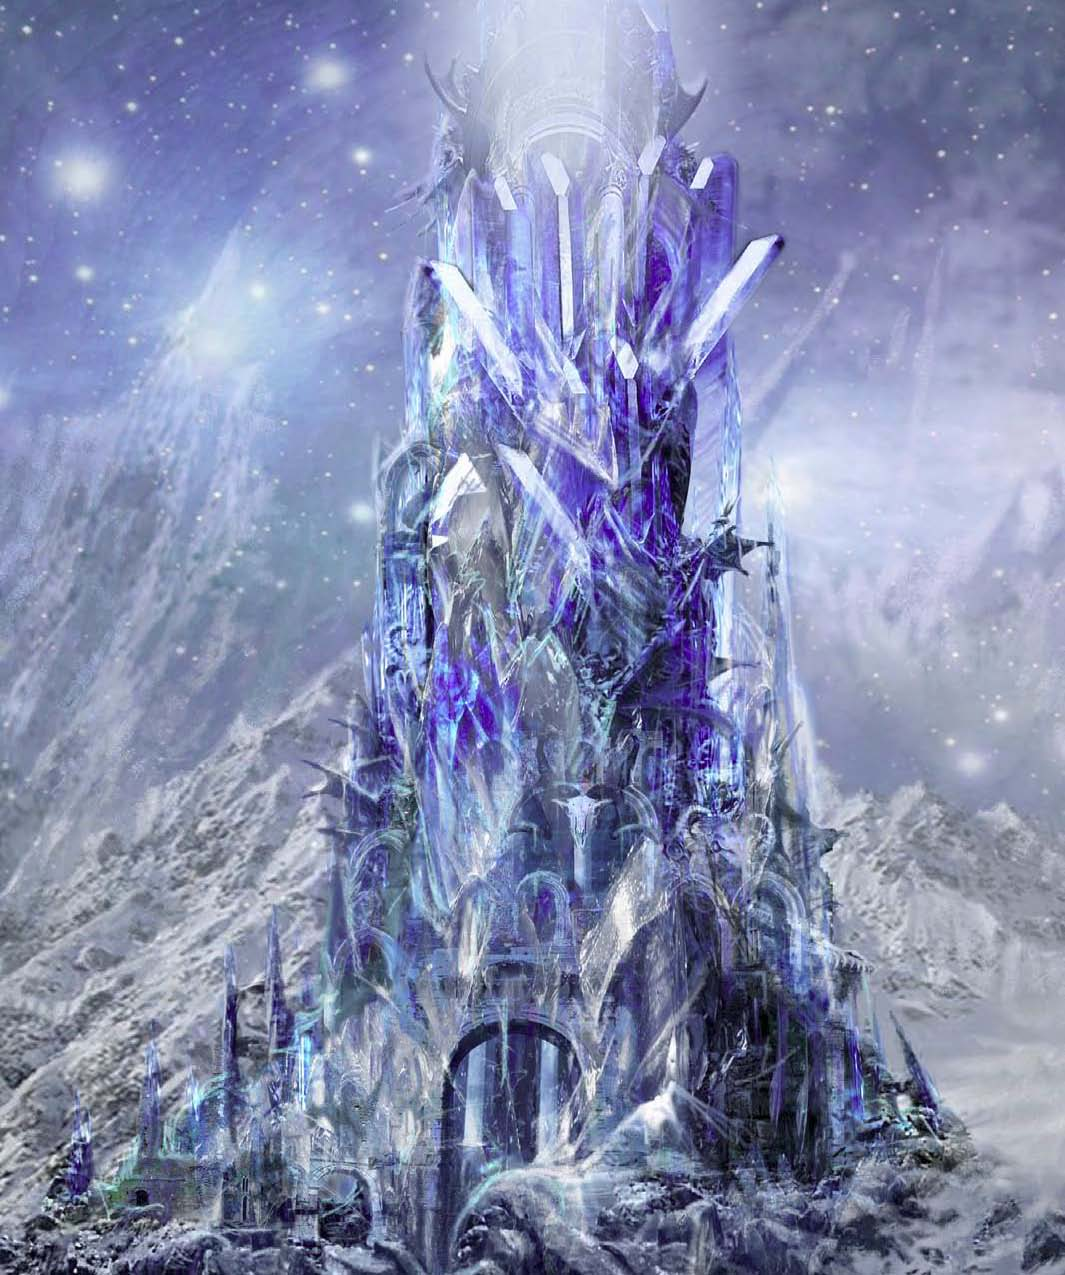 Zaledeneli stolp Dungeon+159+Menace+of+the+Icy+Spire_Page_01_Image_0002